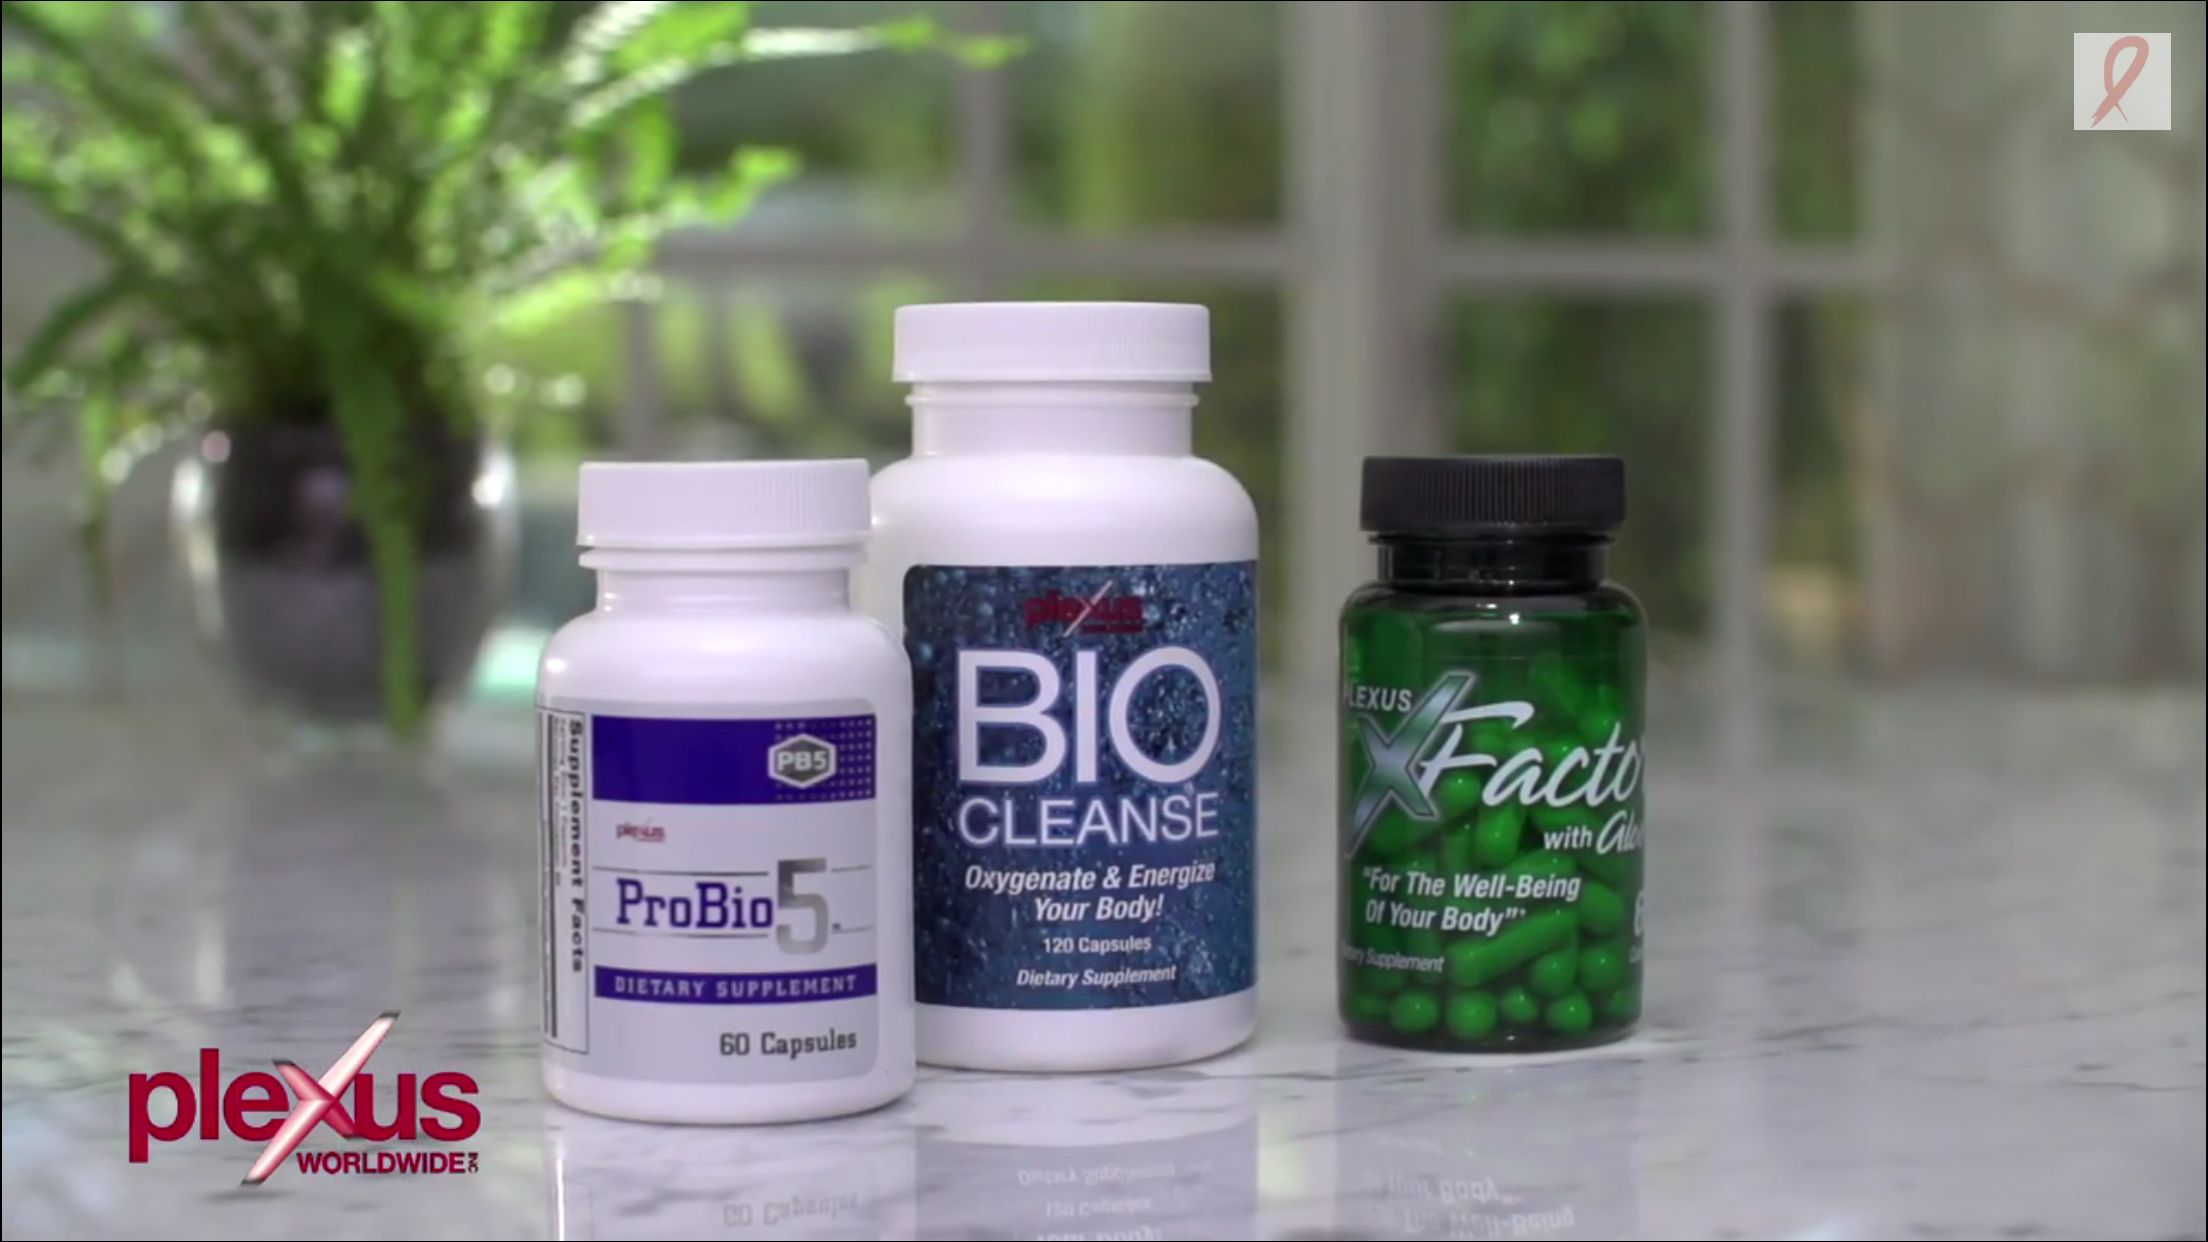 Try our Companion products today - with a 60 day money back guarantee on ALL products you have nothing to lose but IBS, acid reflux, migraines, lack of energy, mood swings, weight, and much more! www.plexusstacy.com